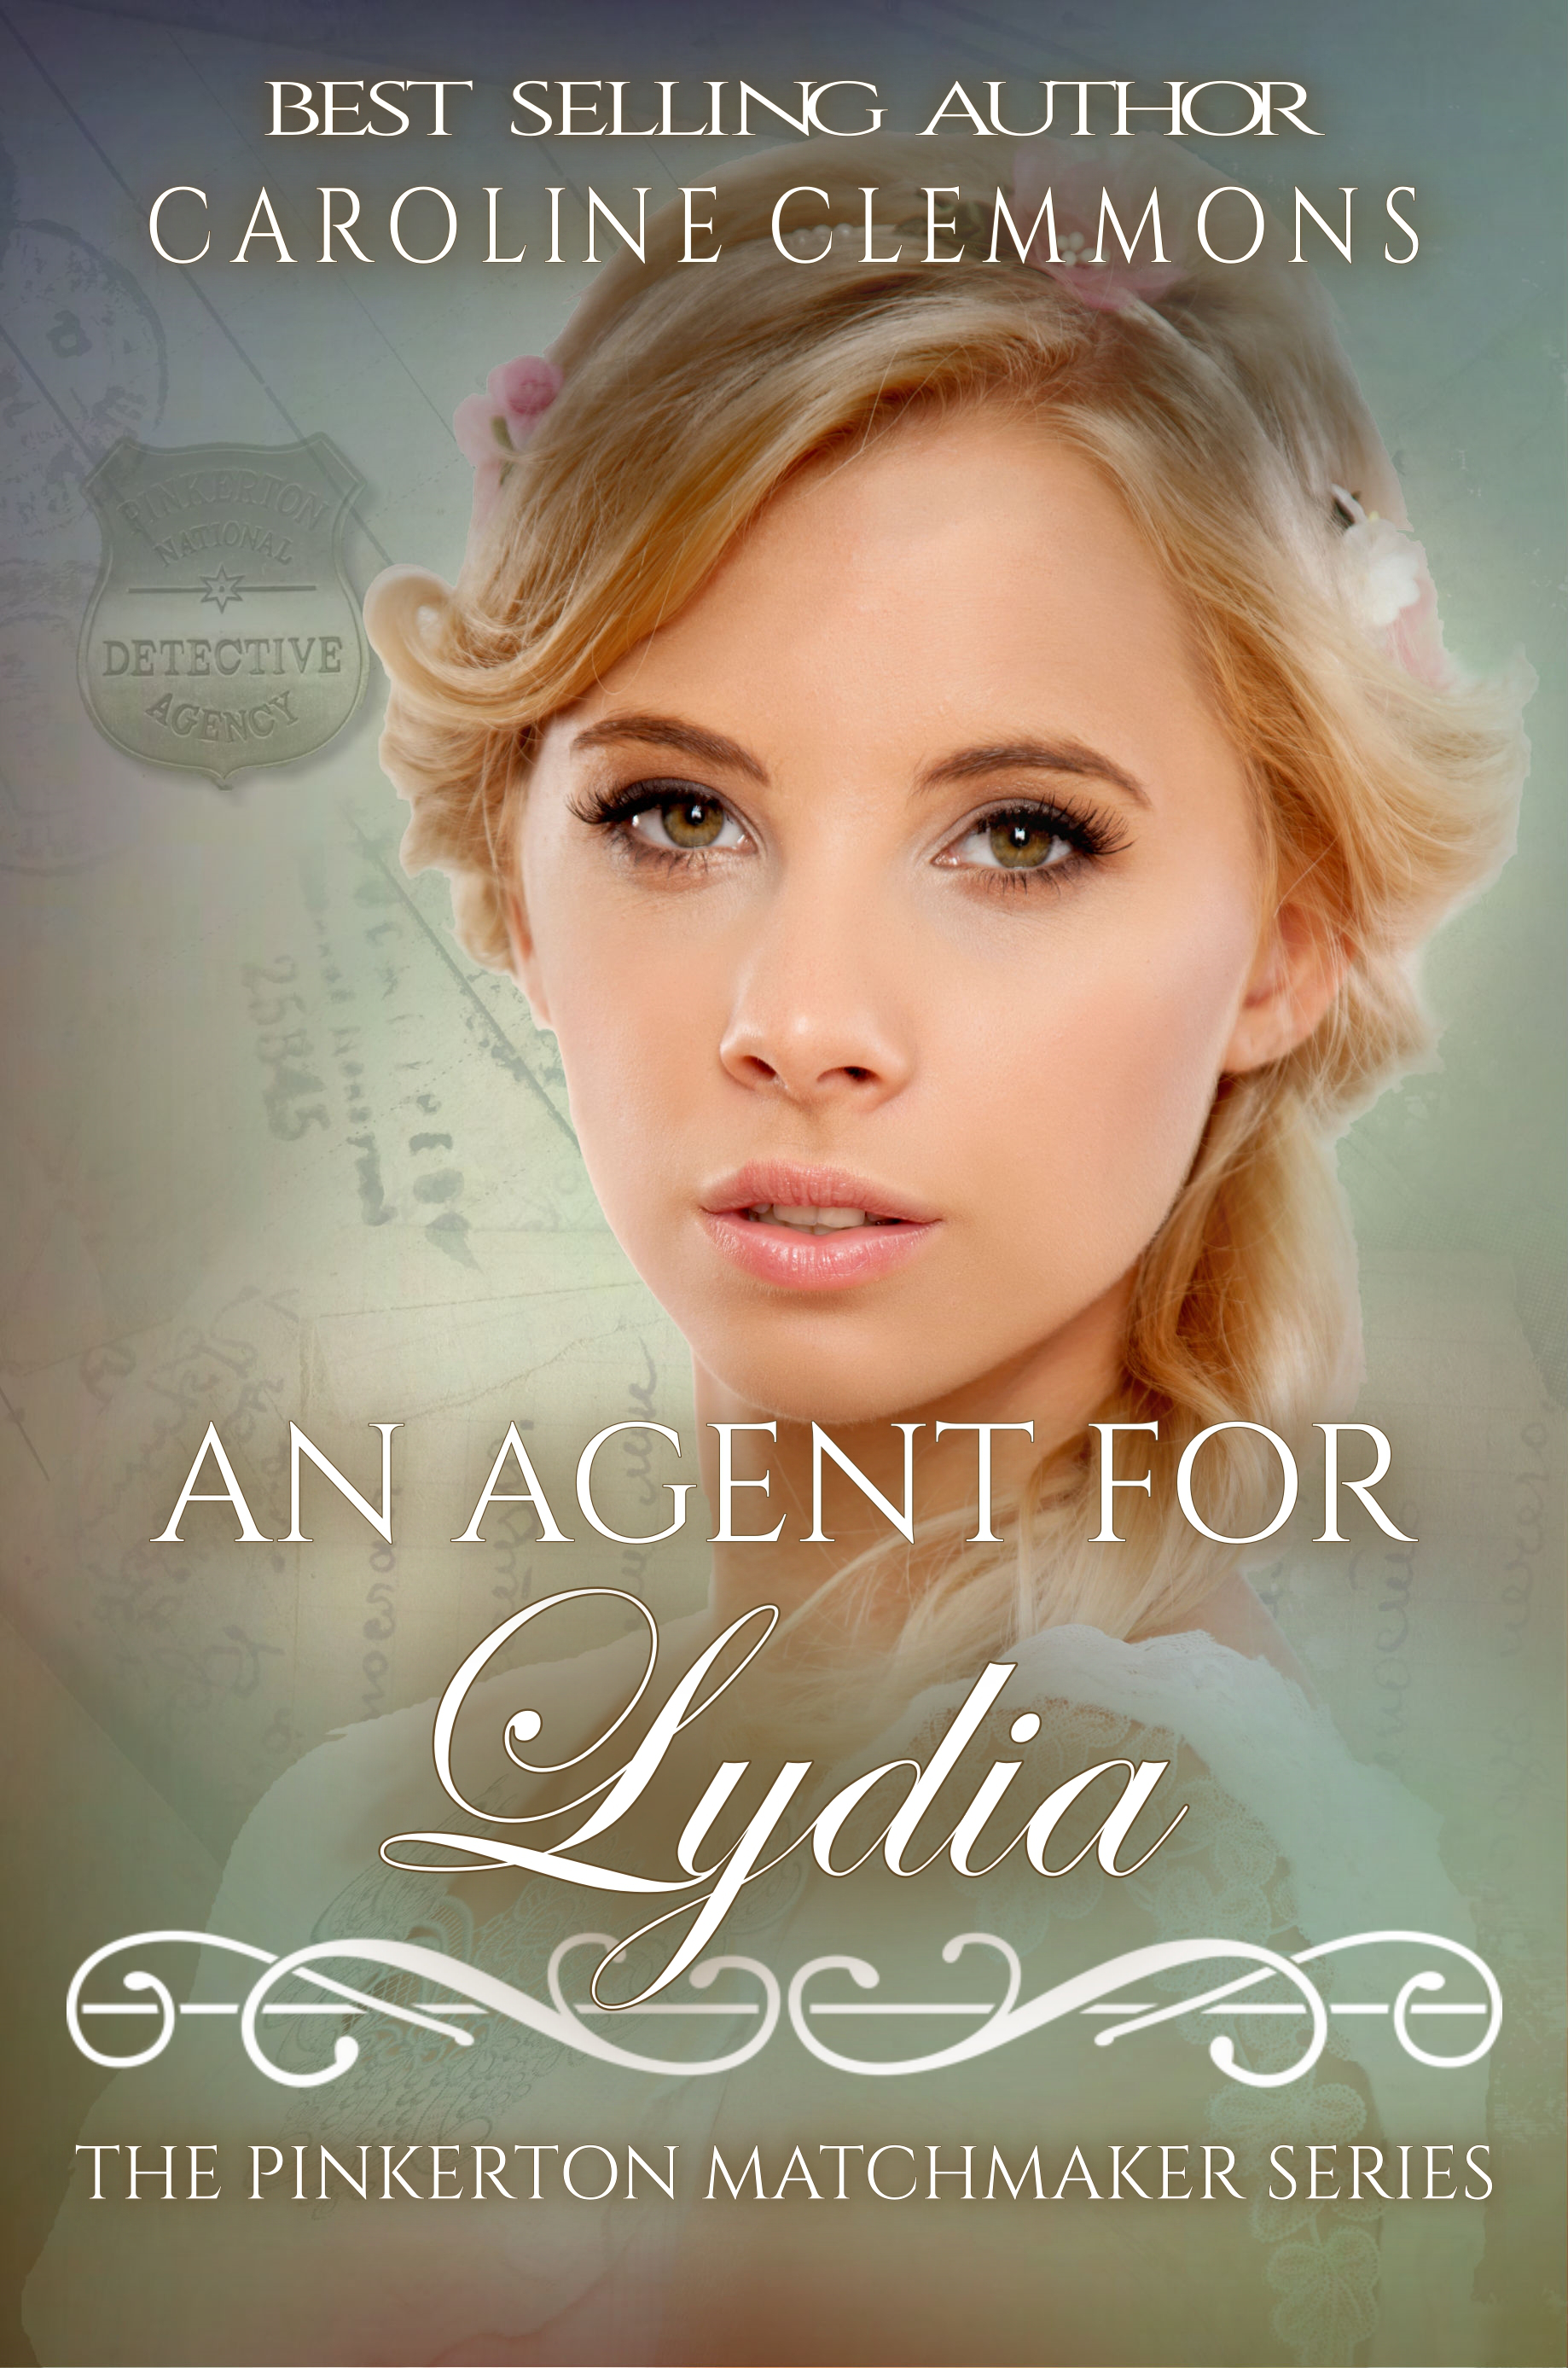 an agent for lydia-Jan 28th